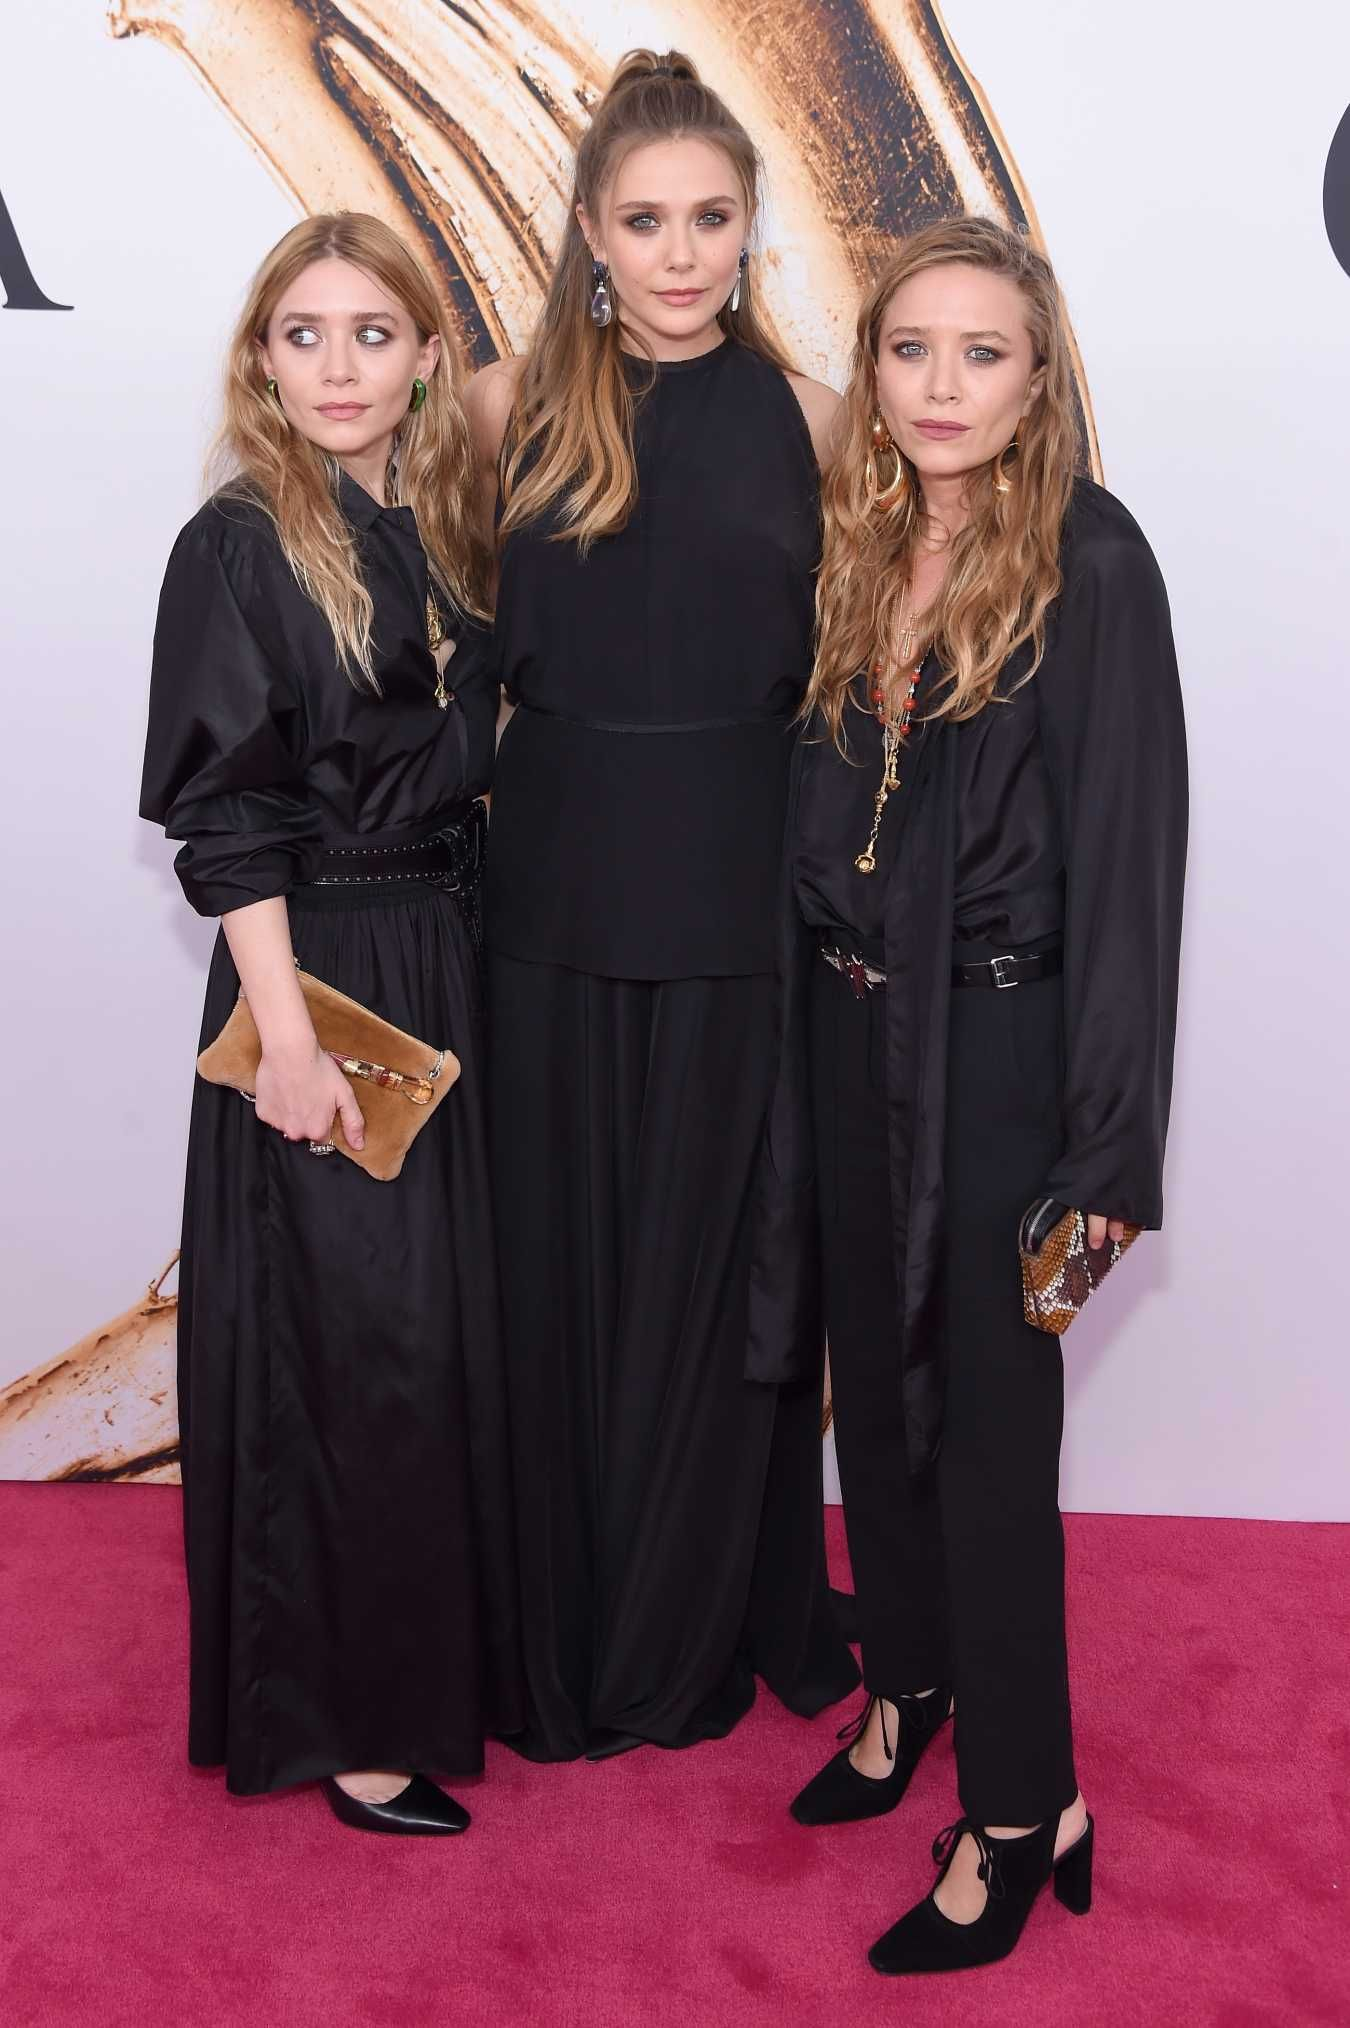 The Olsen Sisters Debut Their Signature Fragrances The Olsen Sisters Debut Their Signature Fragrances new pictures